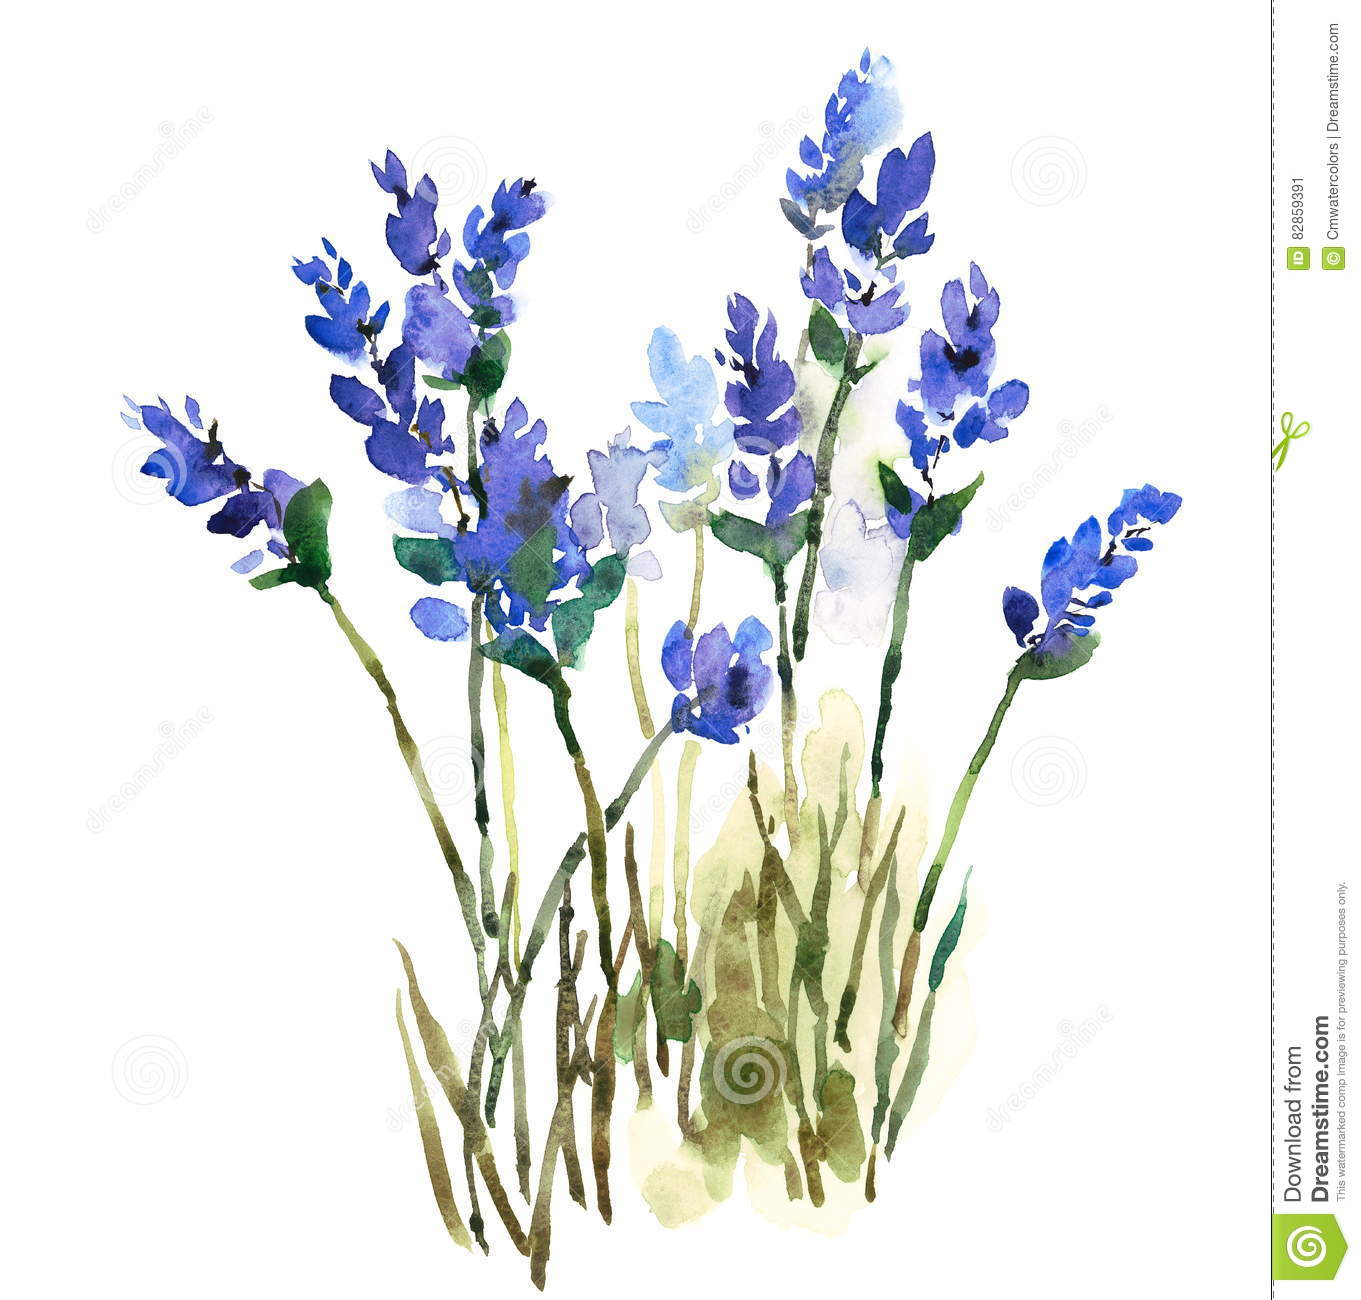 Lavender Watercolor Flowers Illustration Hand Painted ...